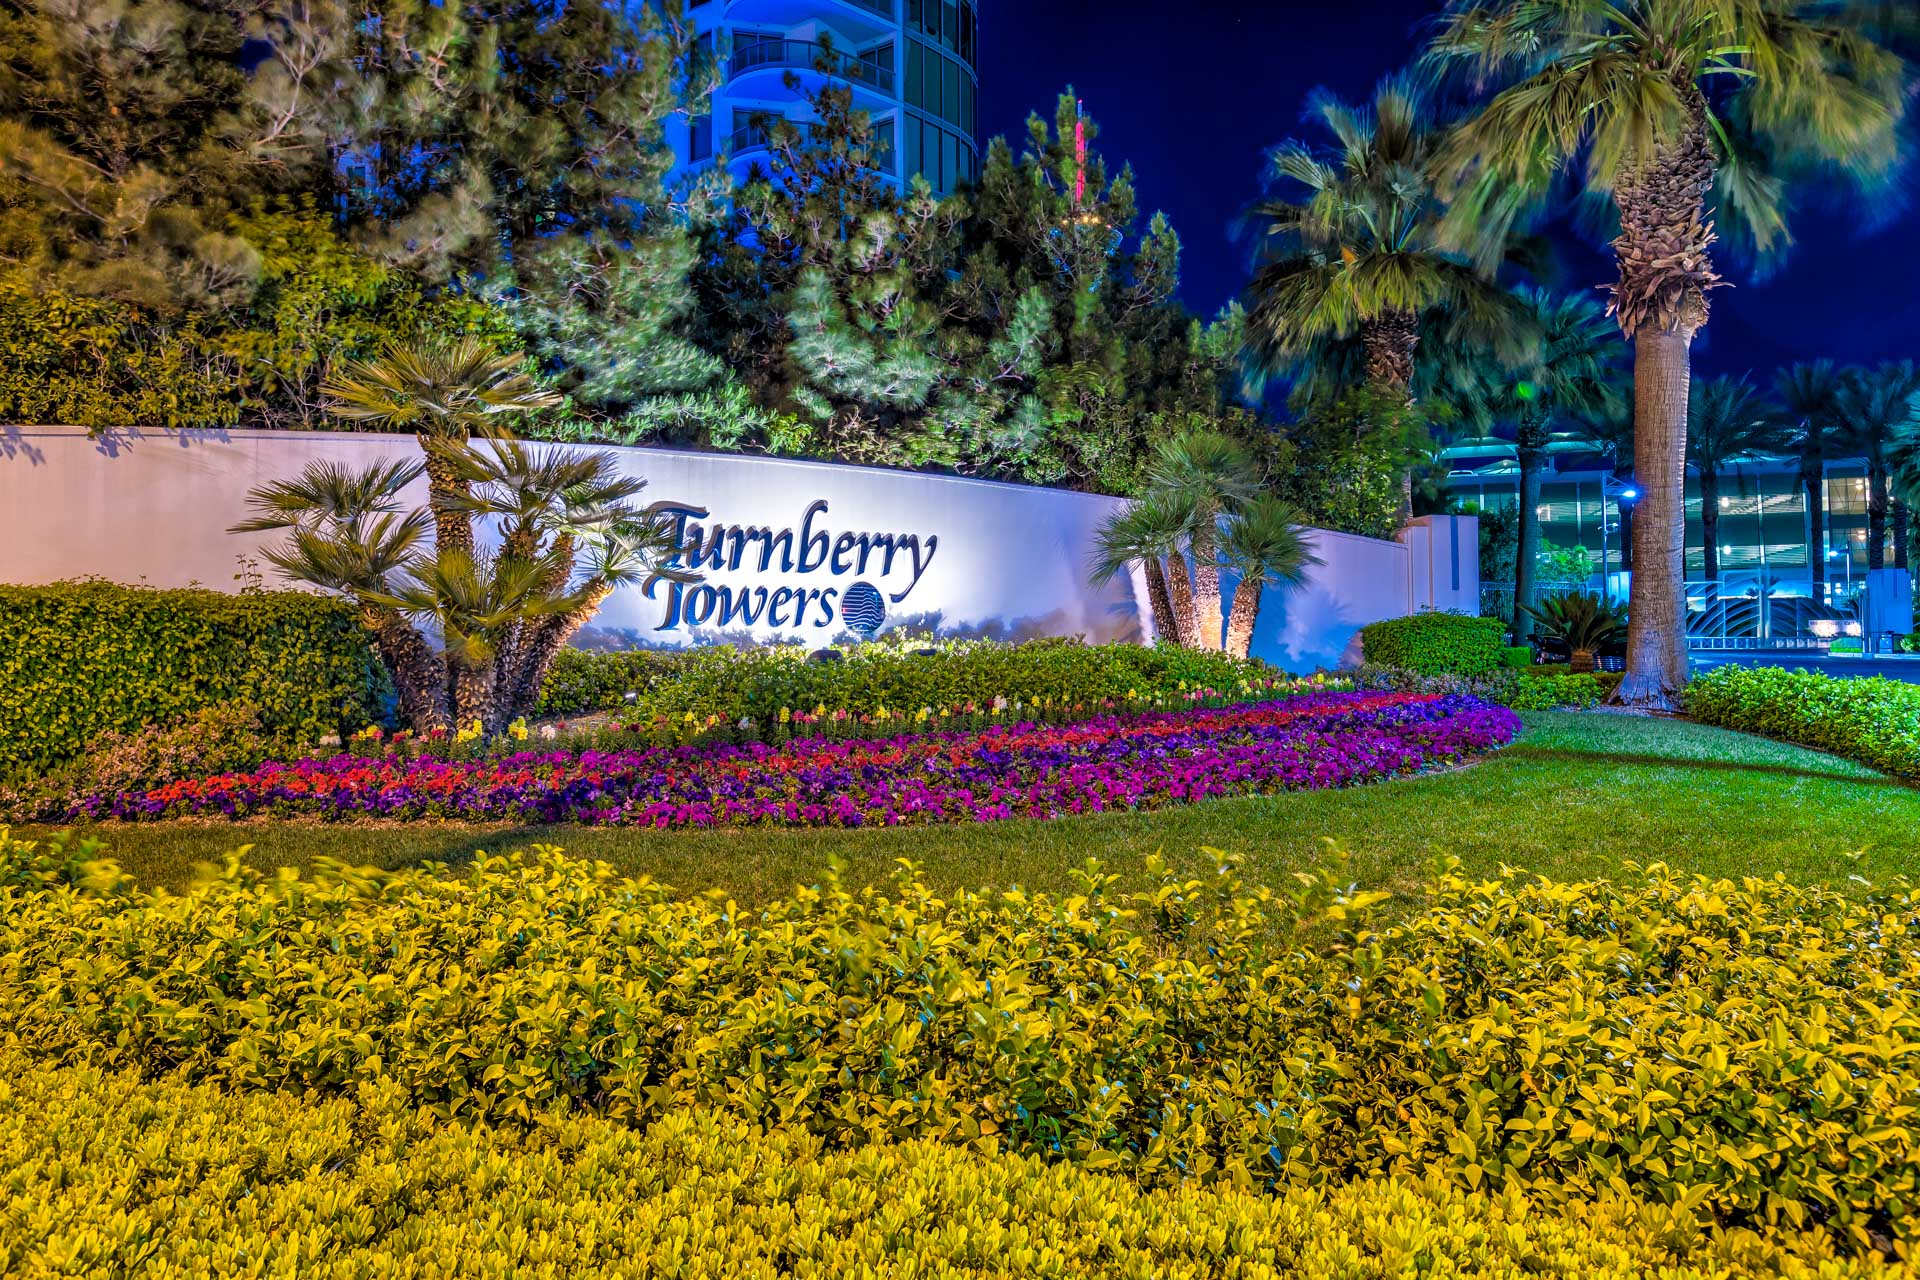 801turnberrytowers-126